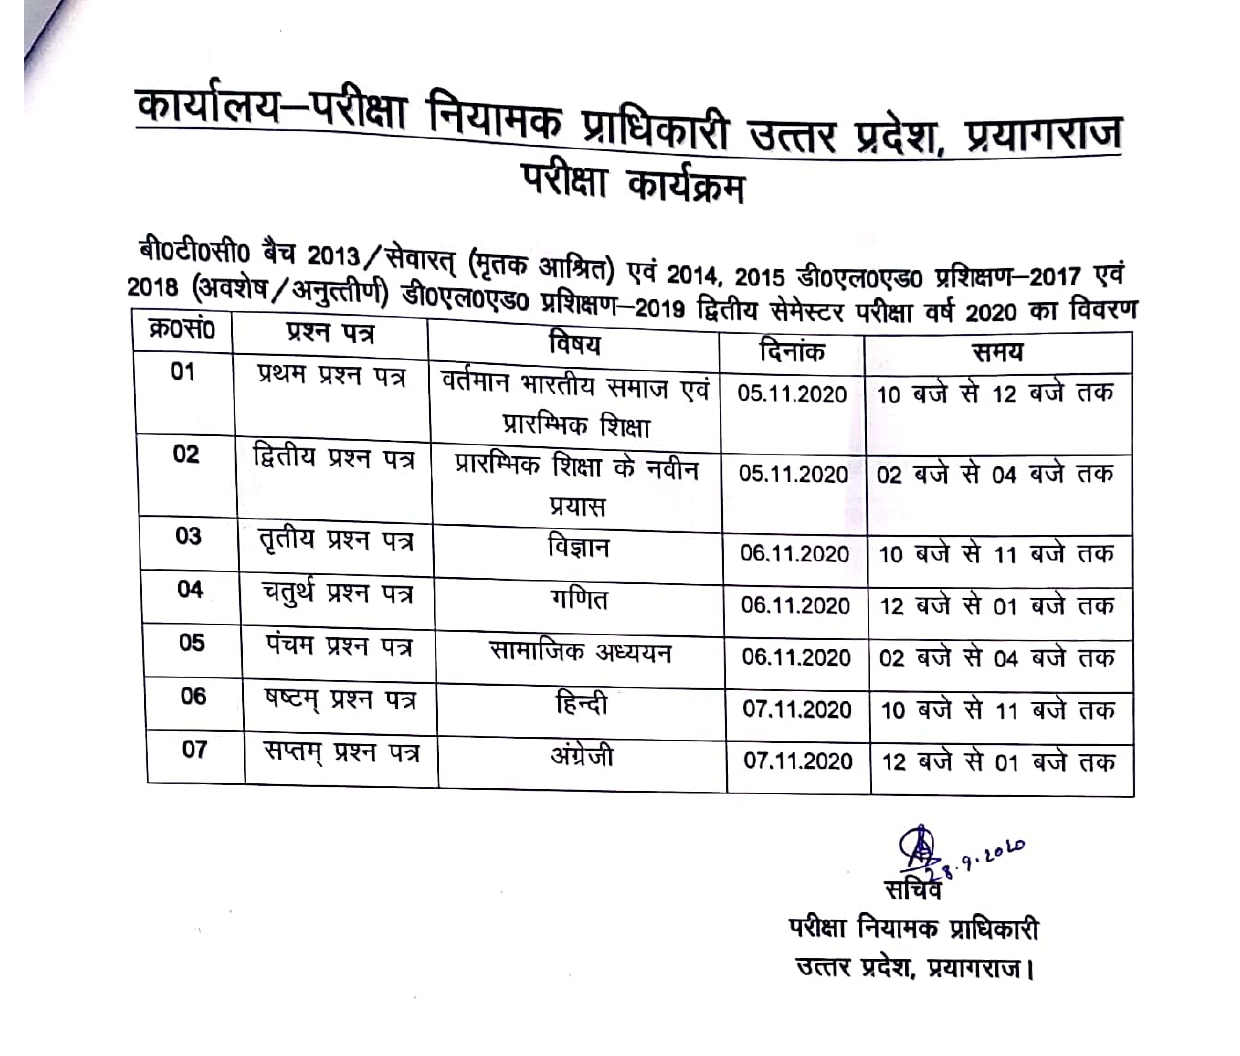 2nd semester exam detail 2019